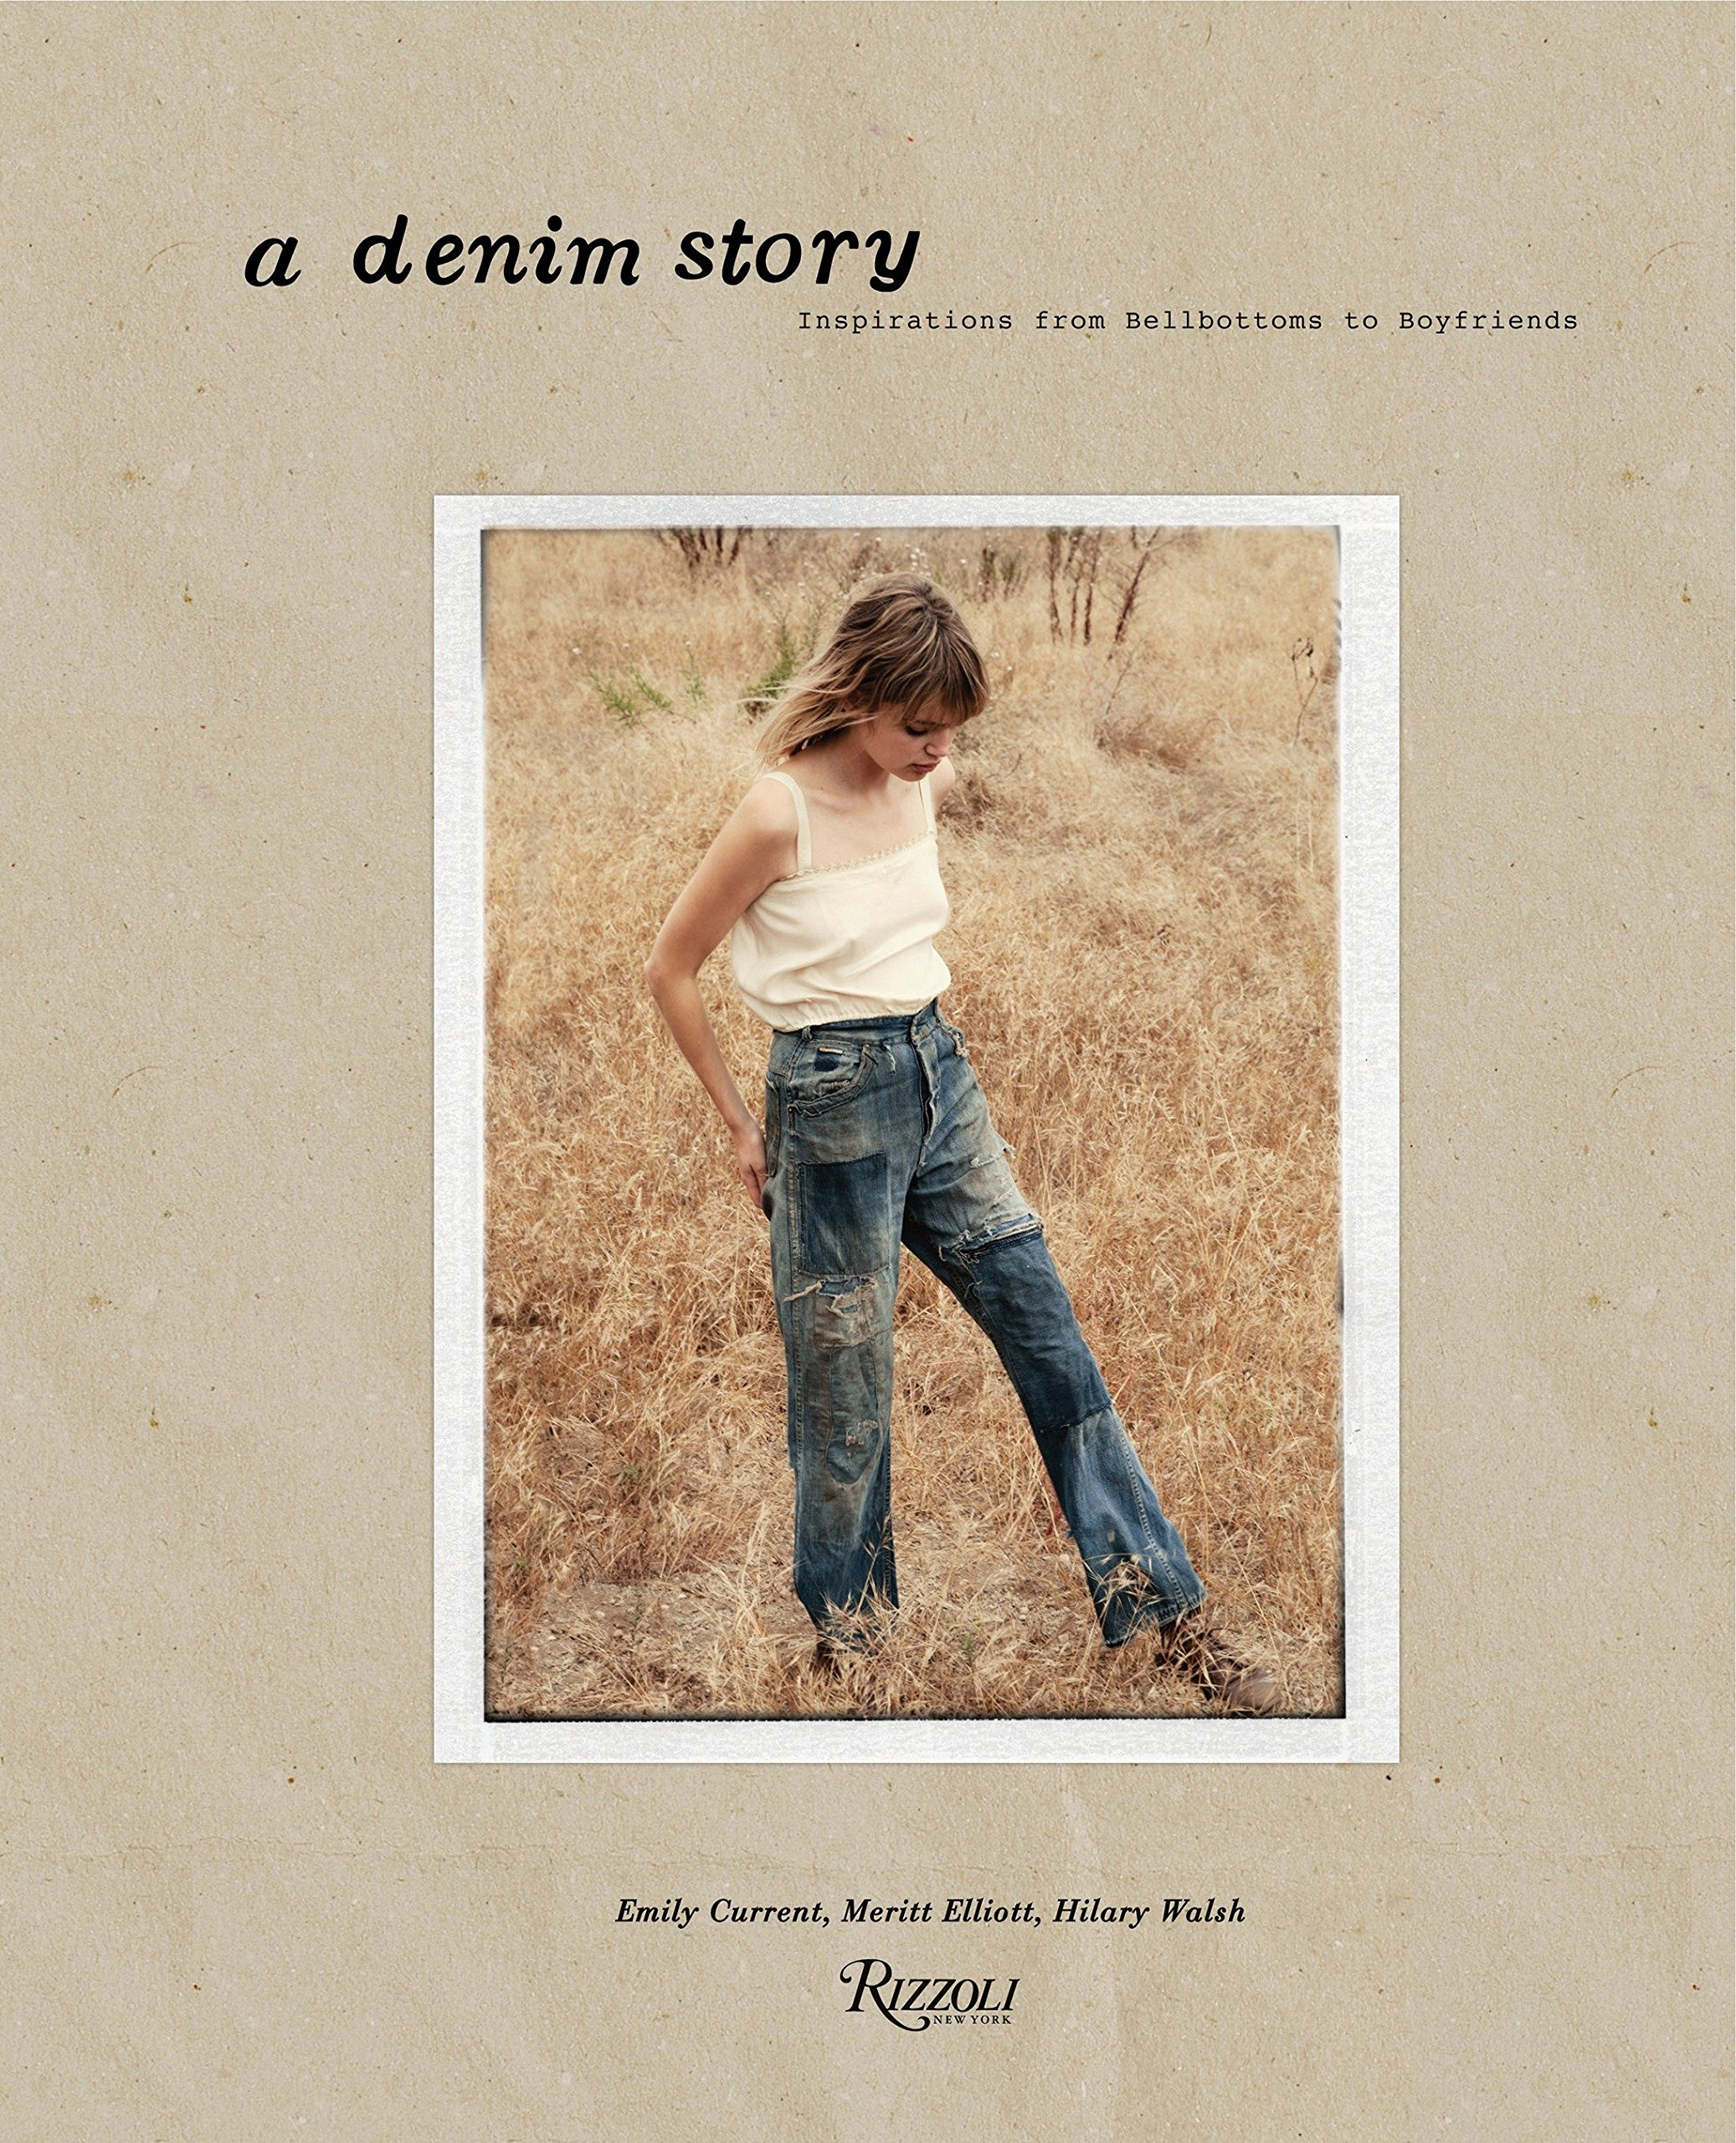 A Denim Story: Inspirations from Bellbottoms to Boyfriends